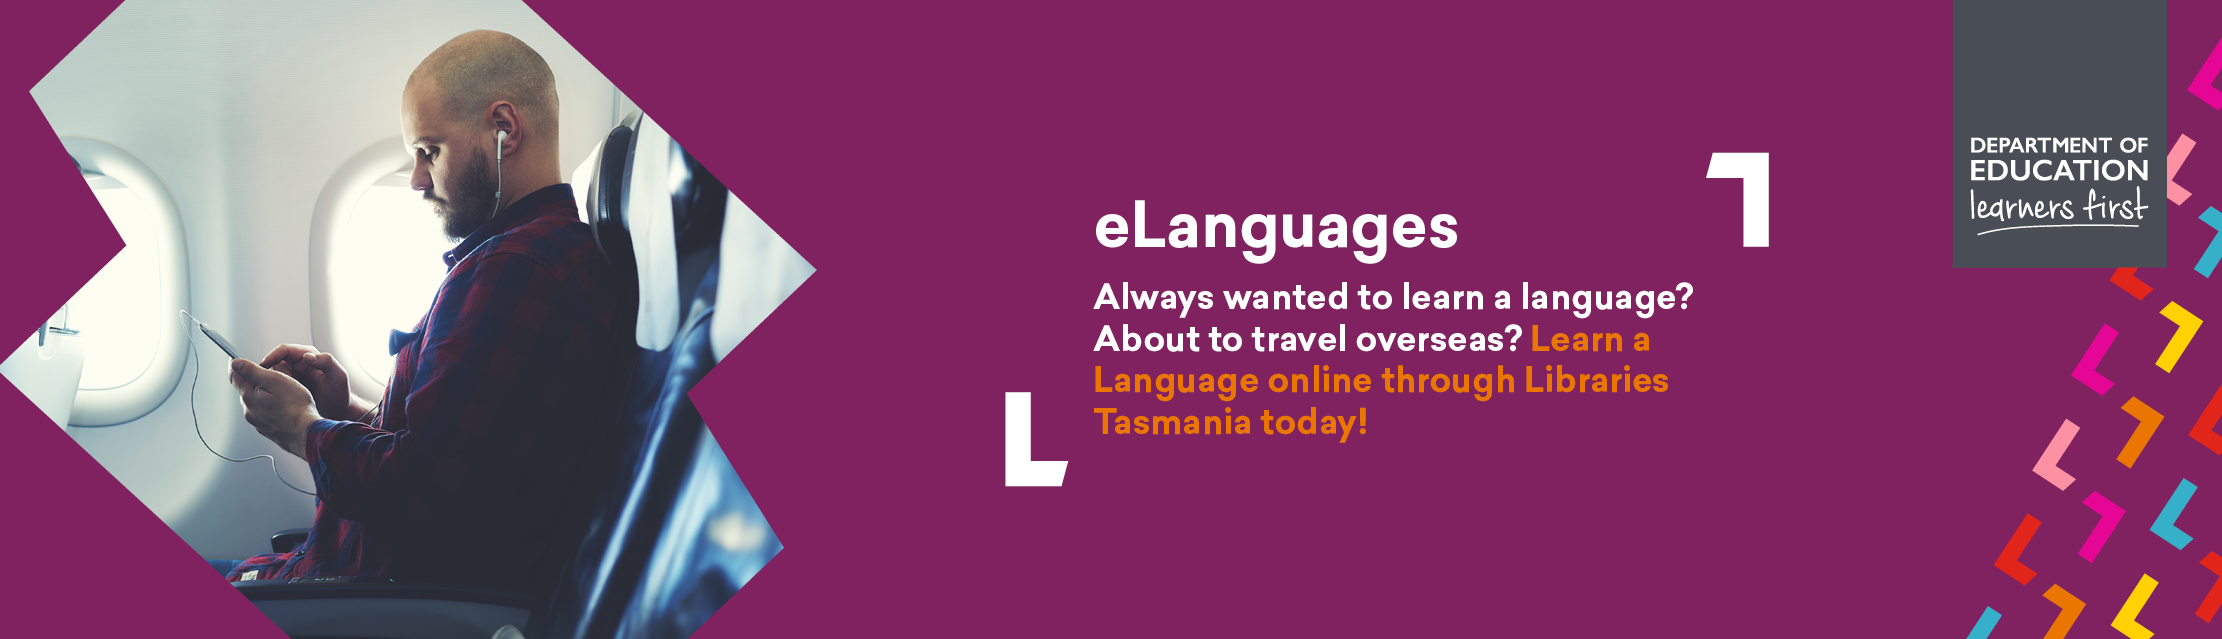 eLanguages. Always wanted to learn a language? About to travel overseas? Learn a Language online through Libraries Tasmania today!